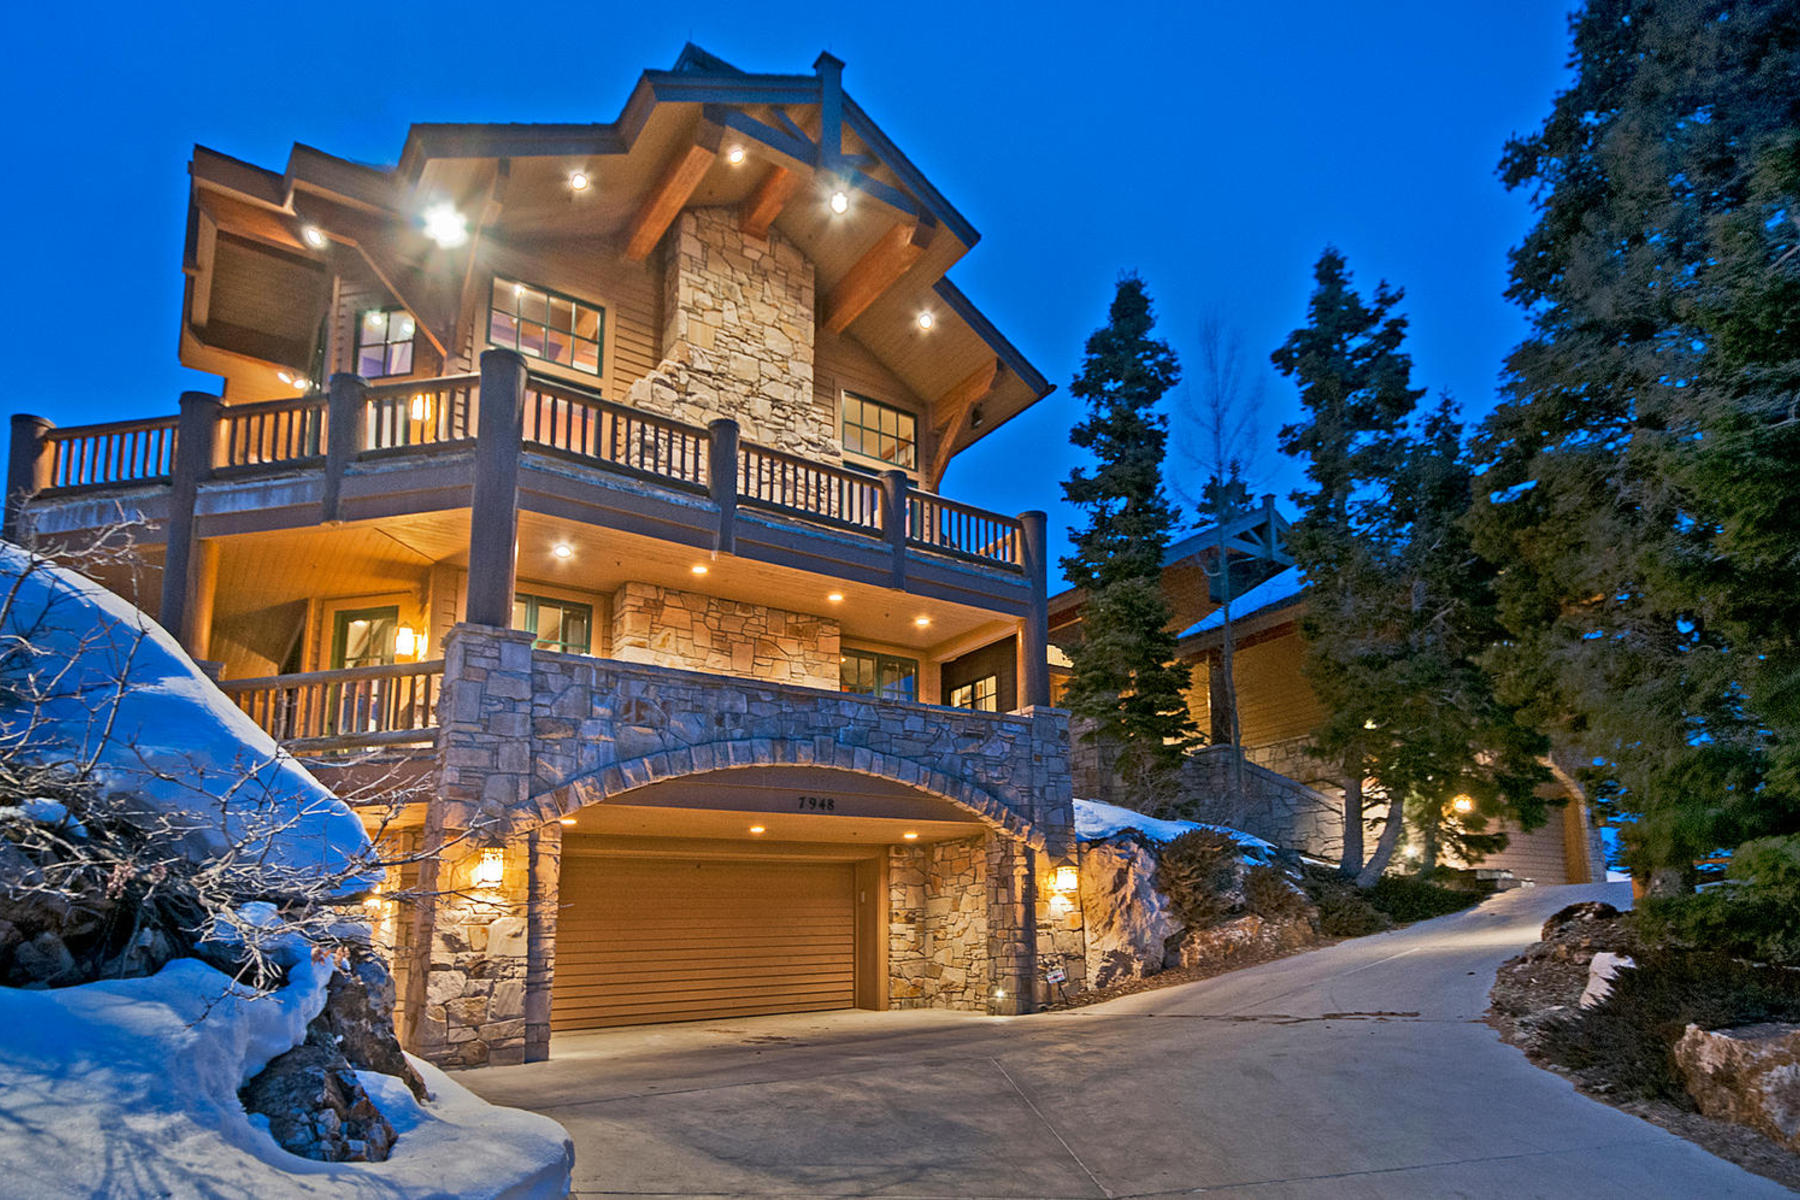 Casa Unifamiliar por un Venta en Timeless Deer Valley Ski-In Ski-out Mountain Retreat 7948 Red Tail Ct Park City, Utah 84060 Estados Unidos